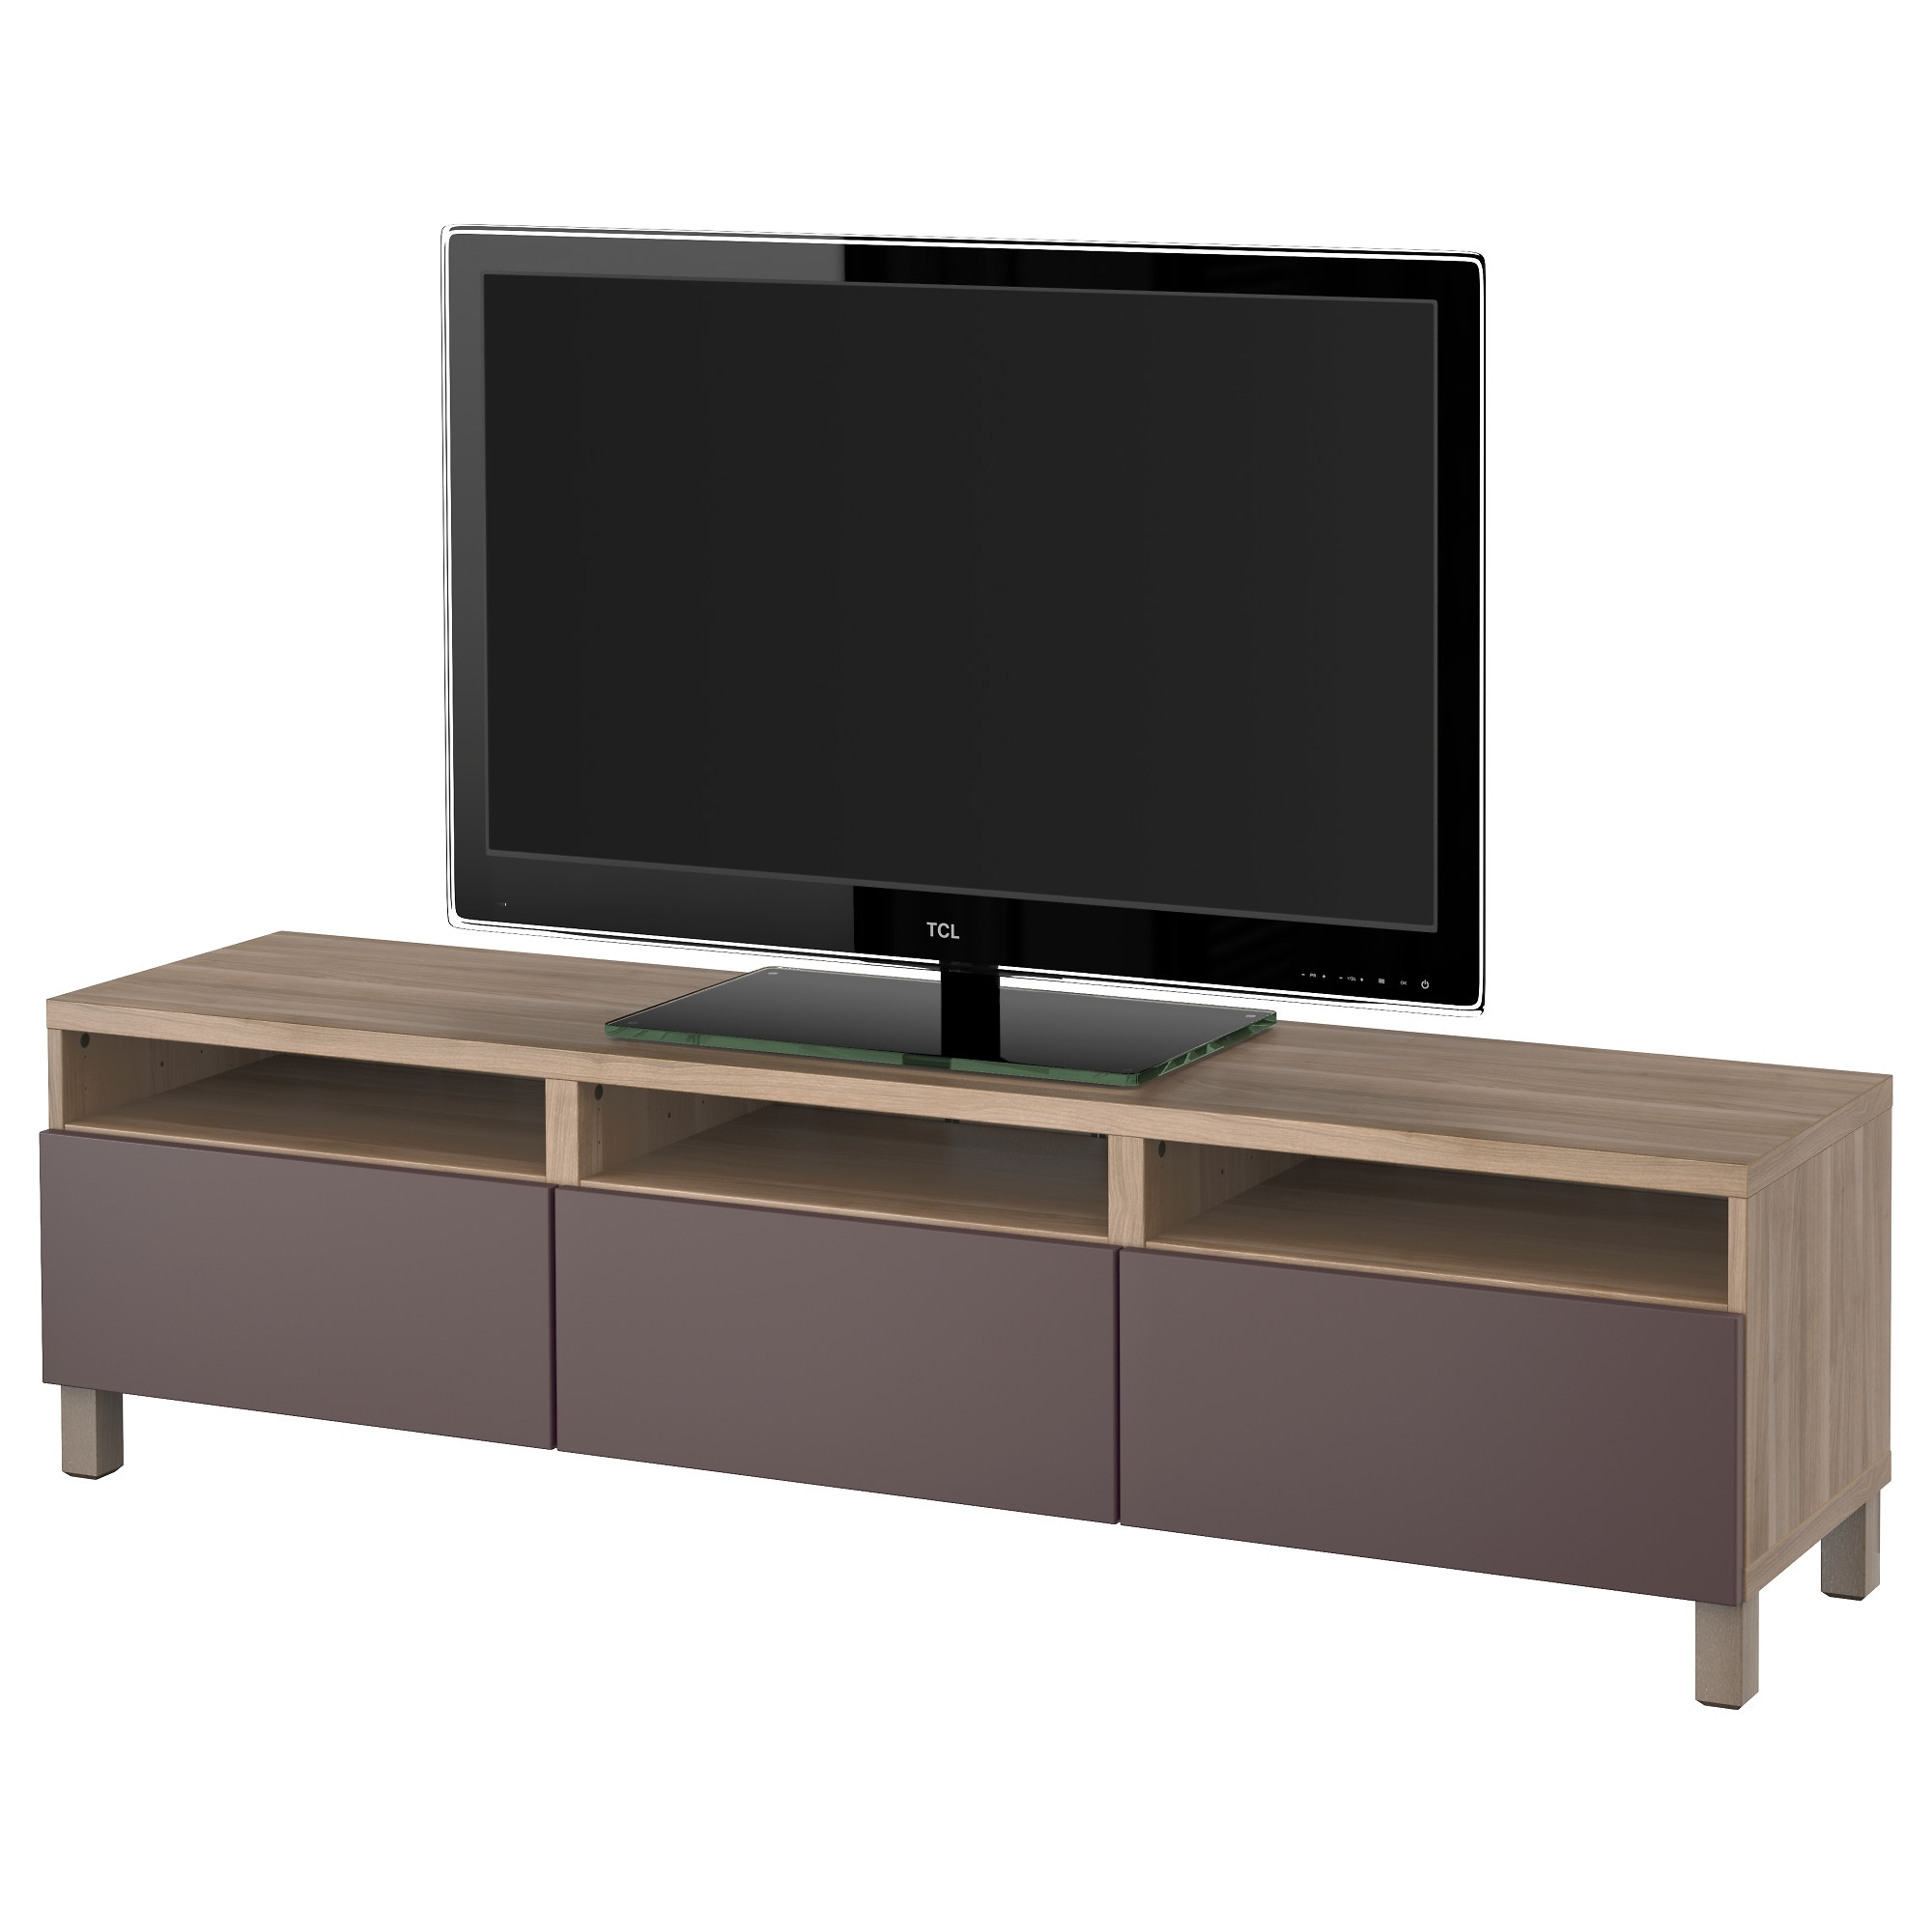 Ikea meuble tv blanc ensemble meuble tv ikea medium size - Mueble tv ikea ...